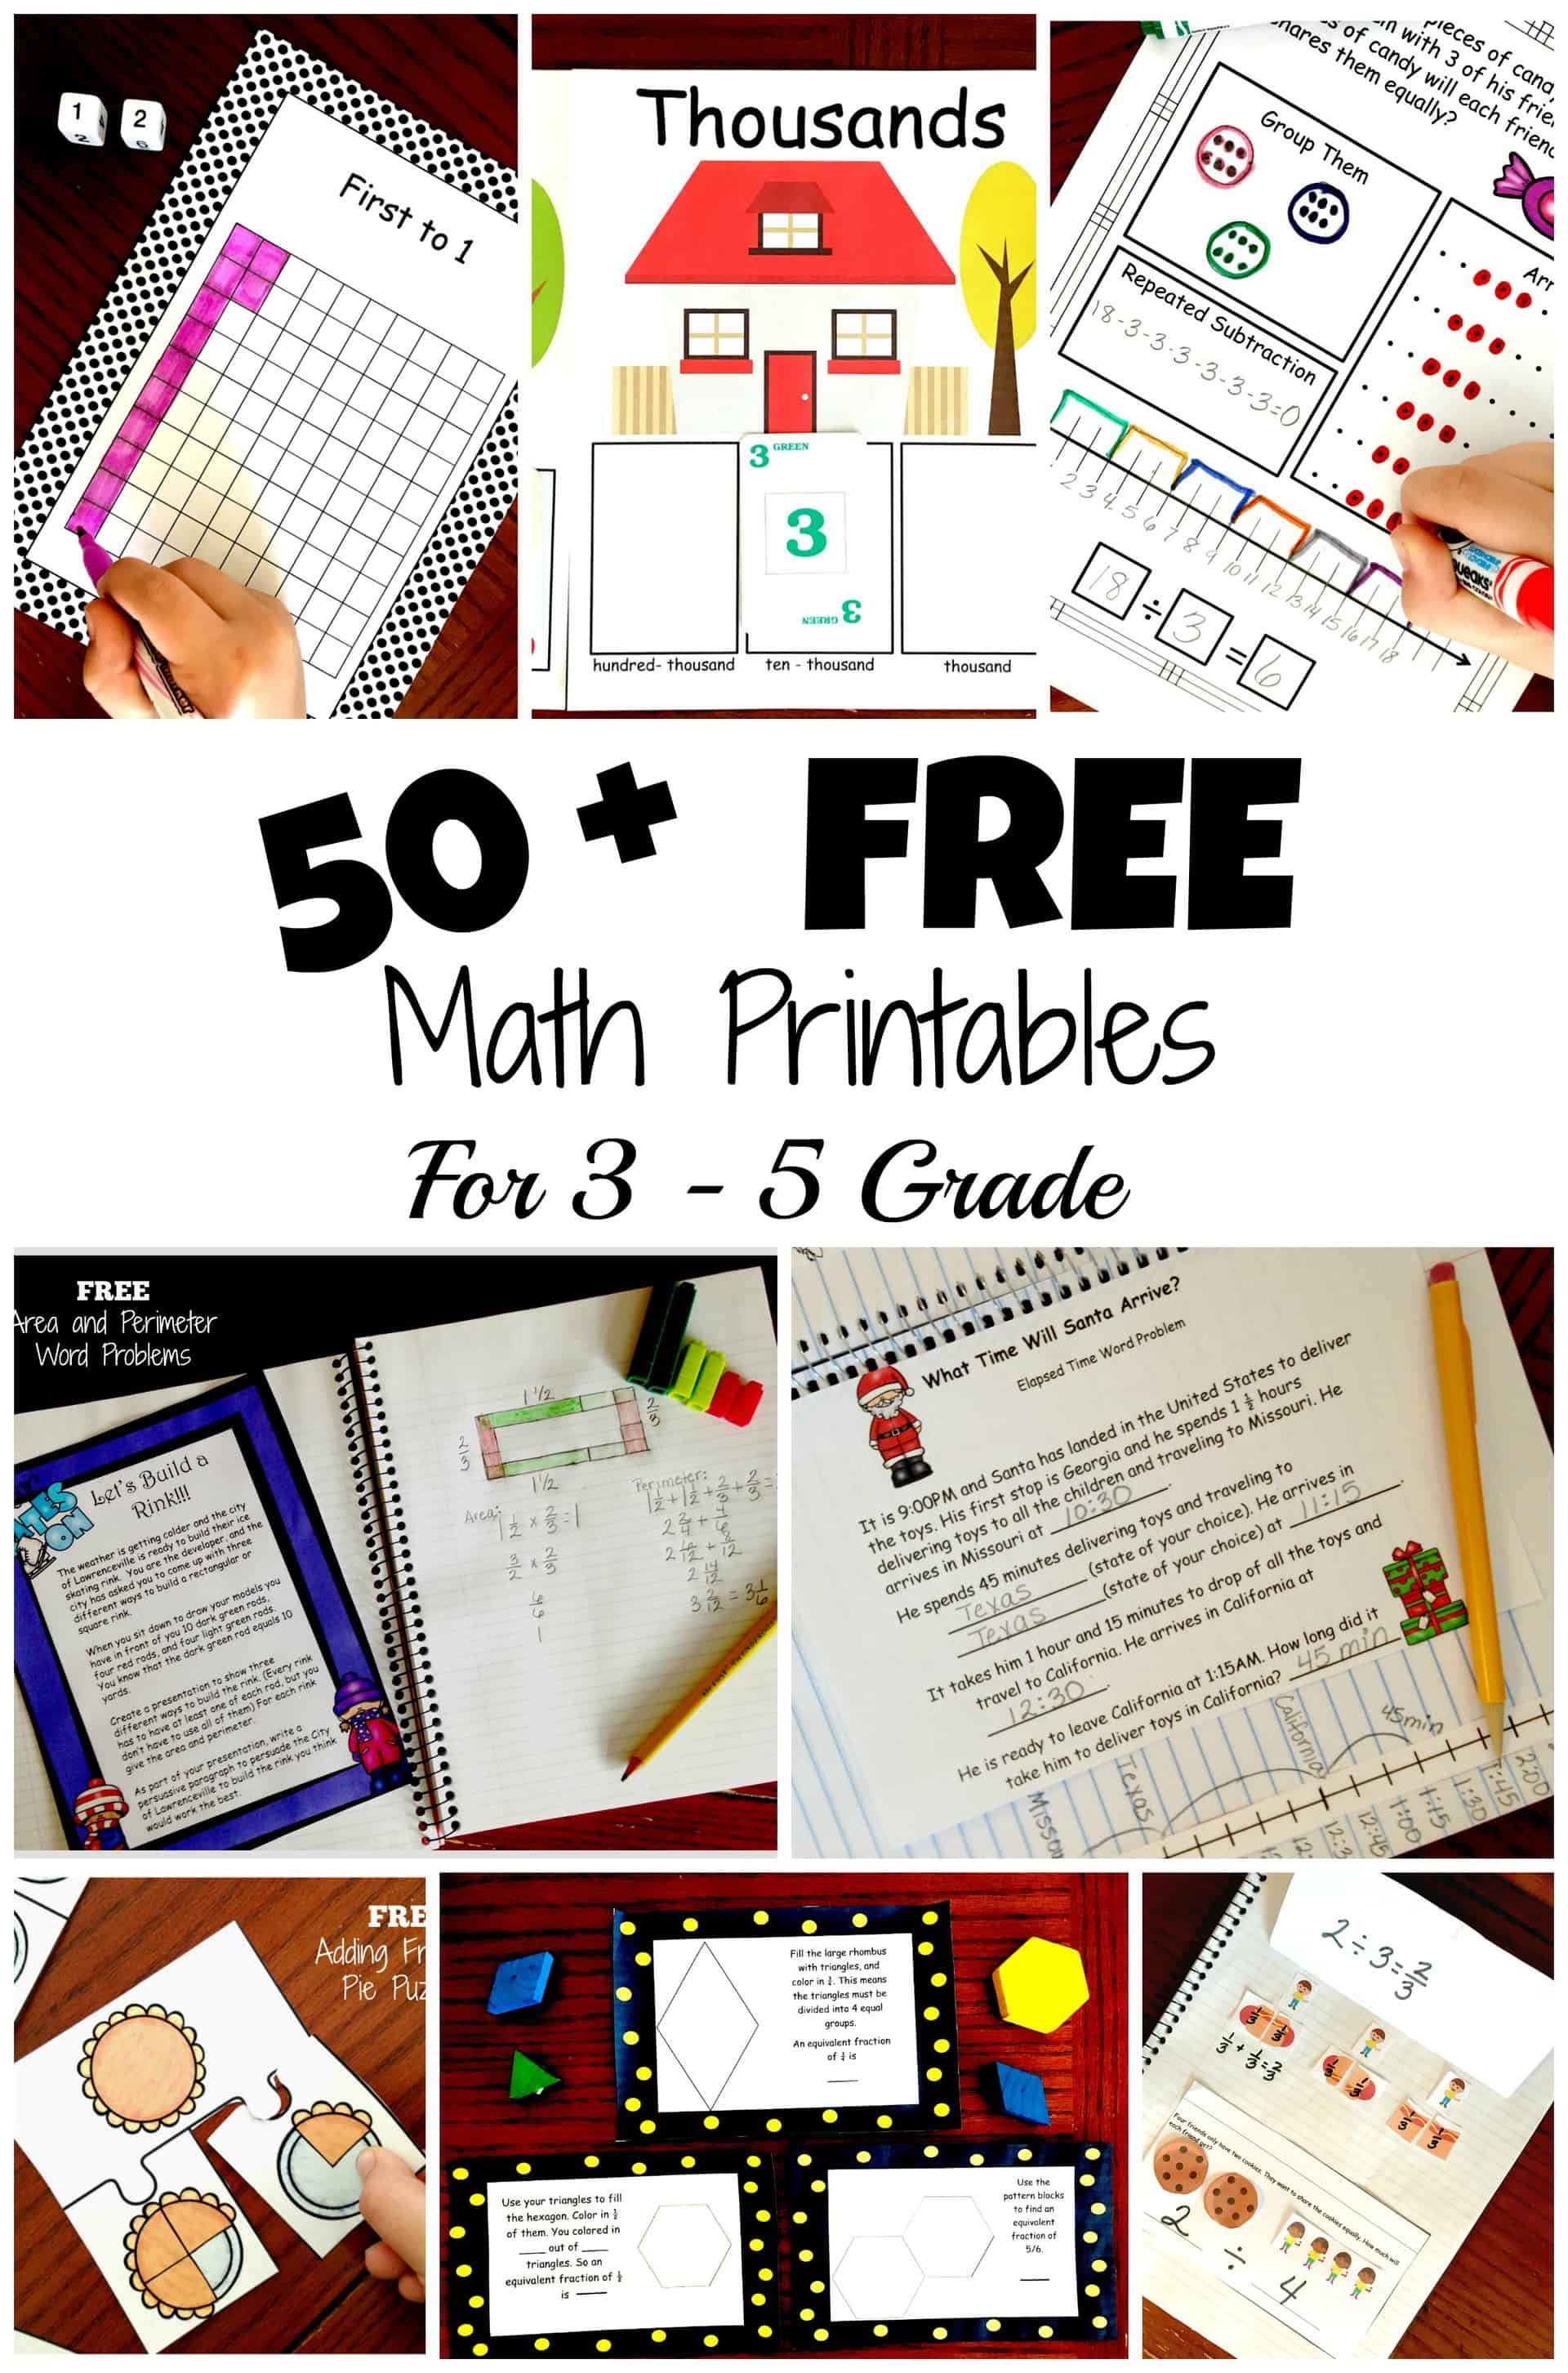 50 Awesome And Fun Math Activities For 3rd 4th And 5th Grade Students